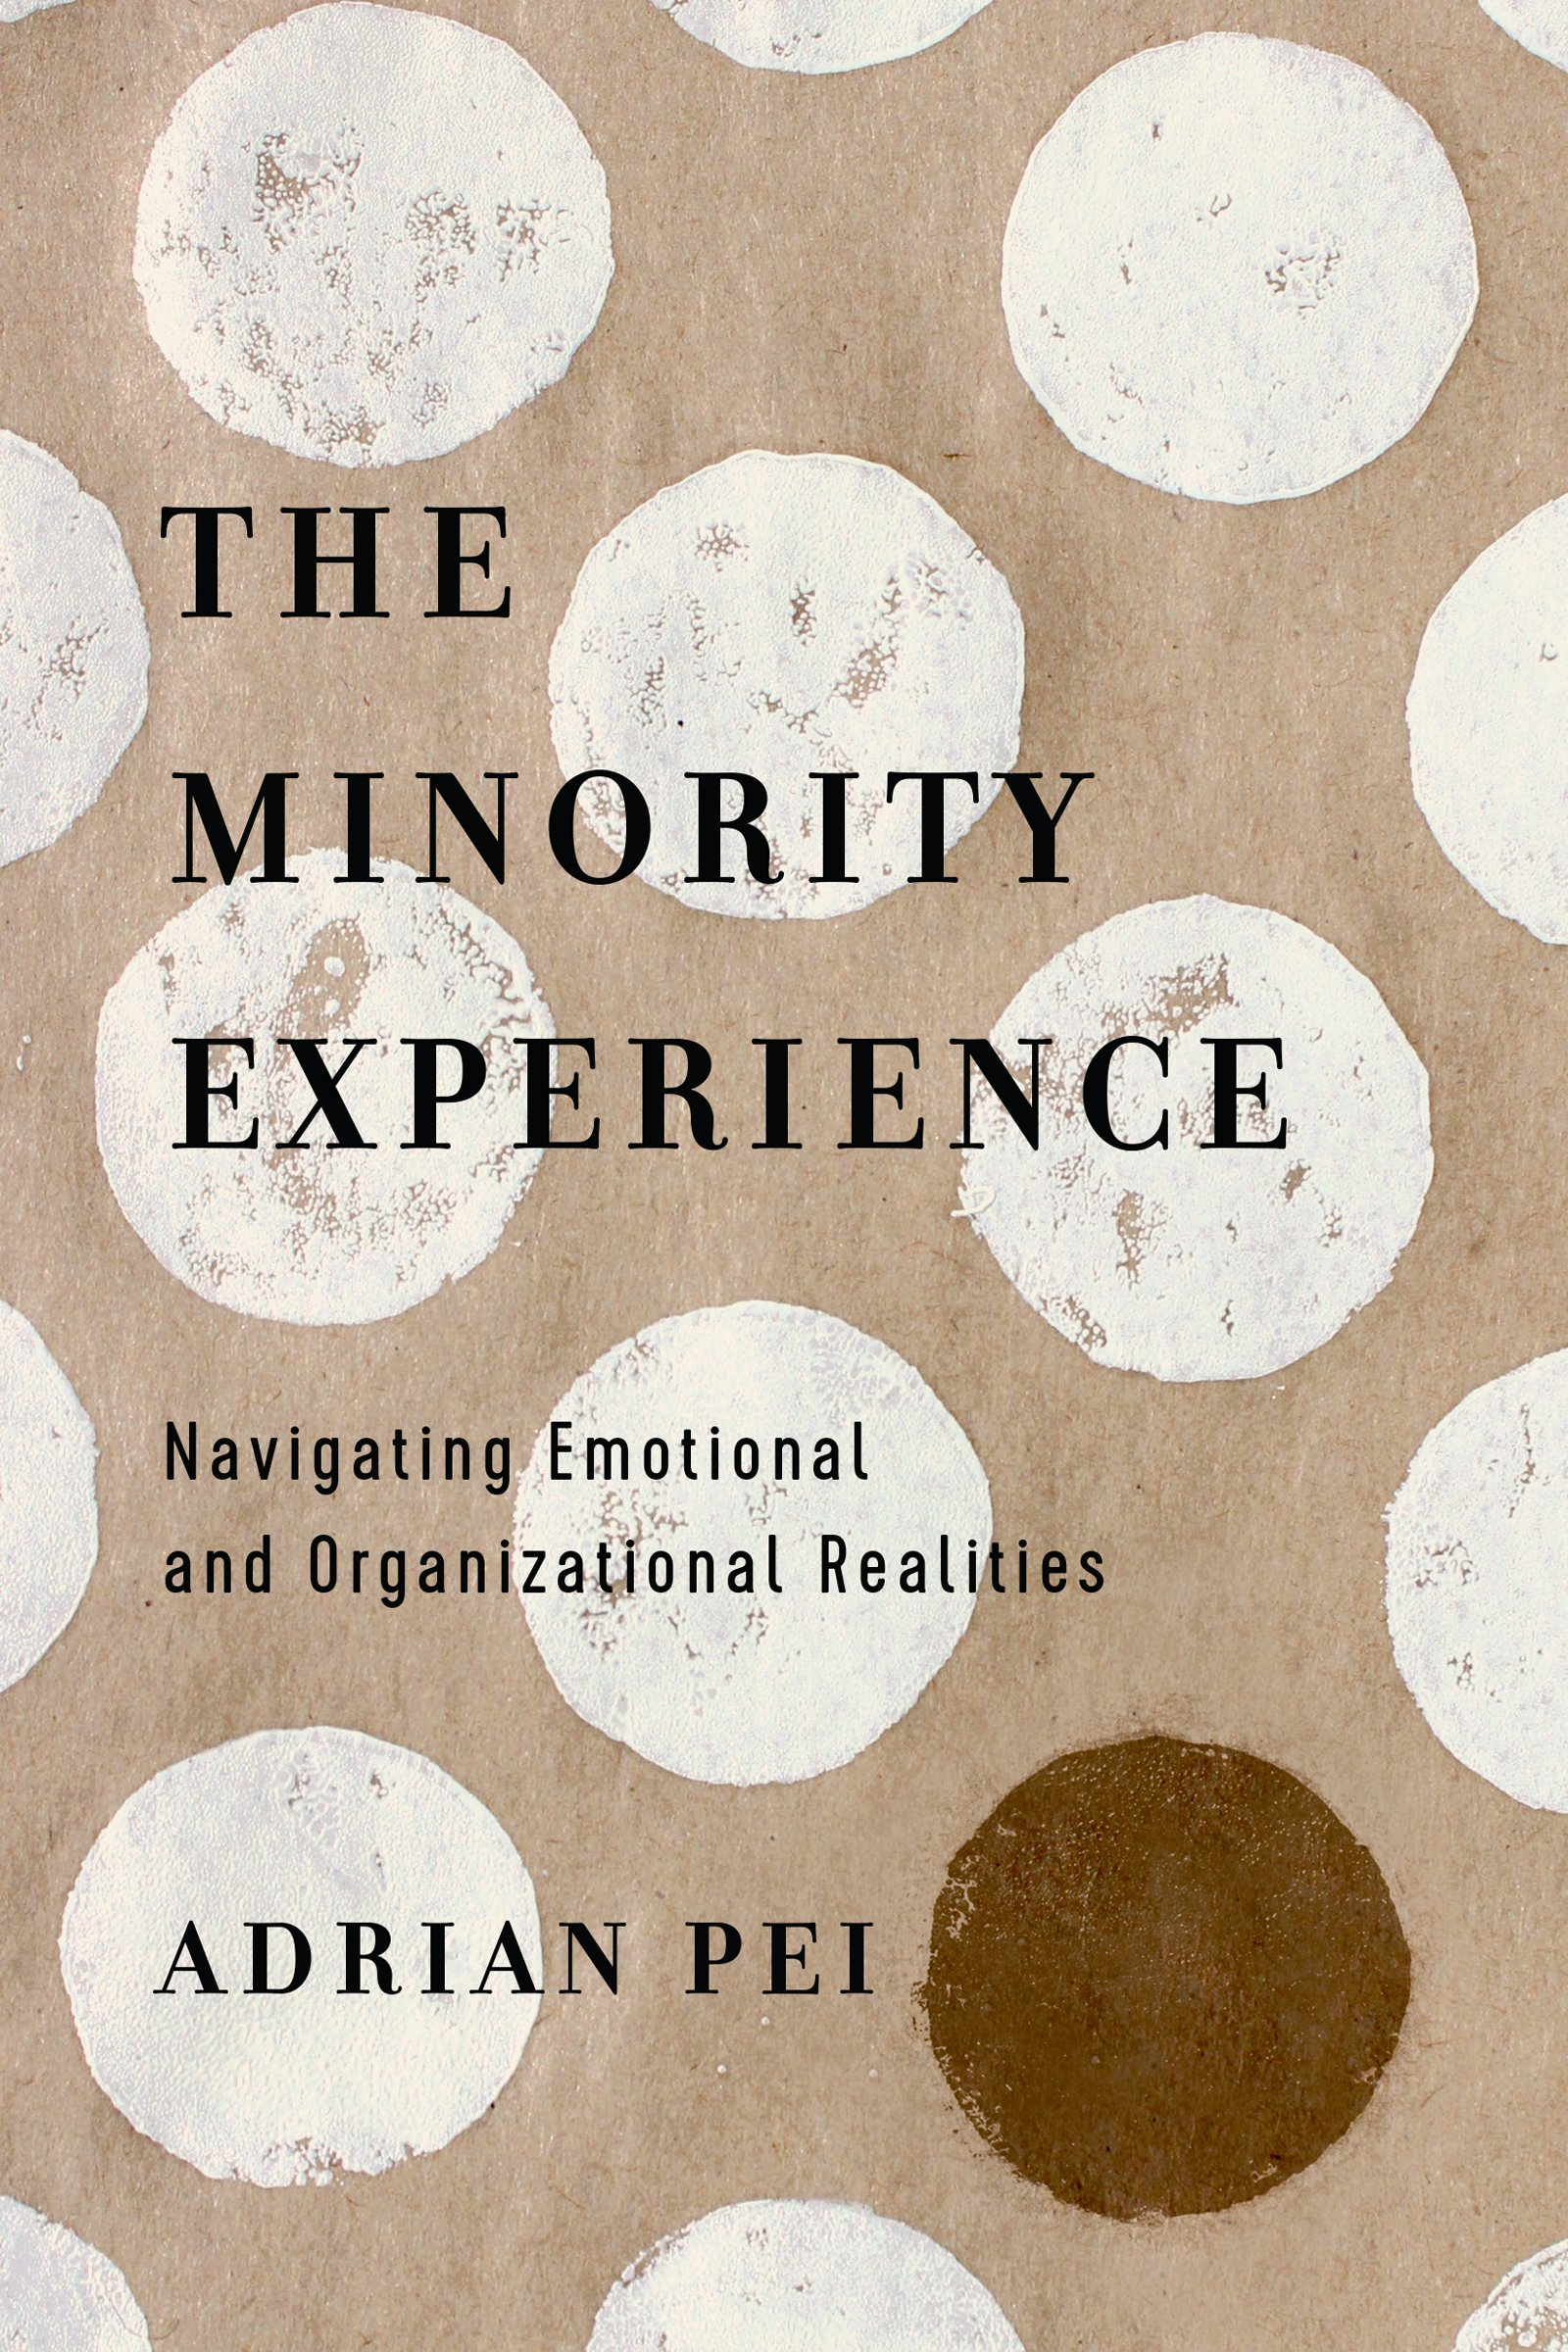 The Minority Experience: Navigating Emotional and Organizational Realities